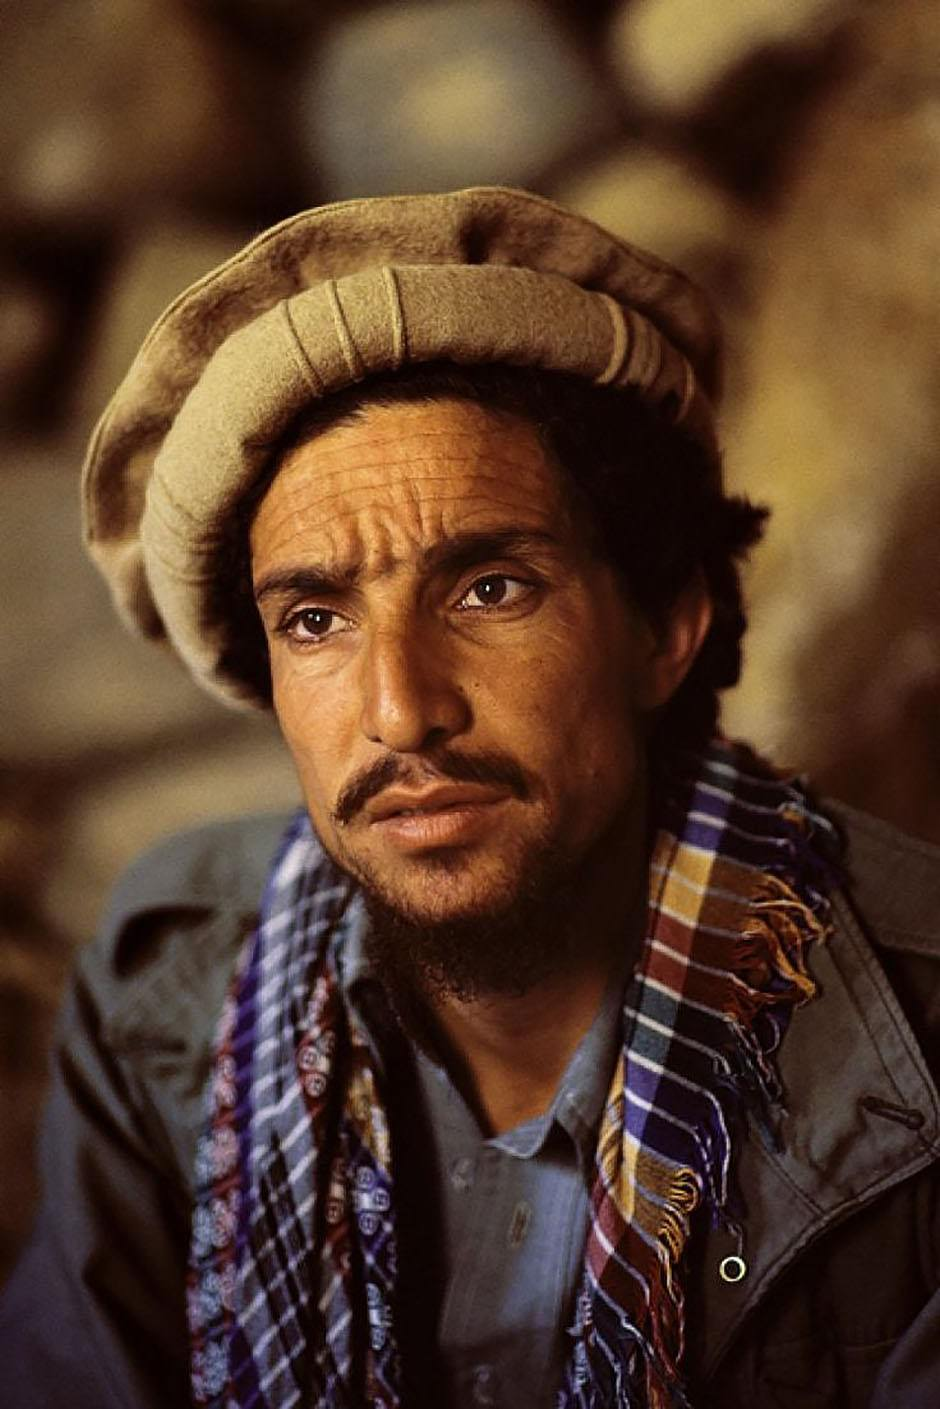 Massoud by Reza Deghati Afganistan